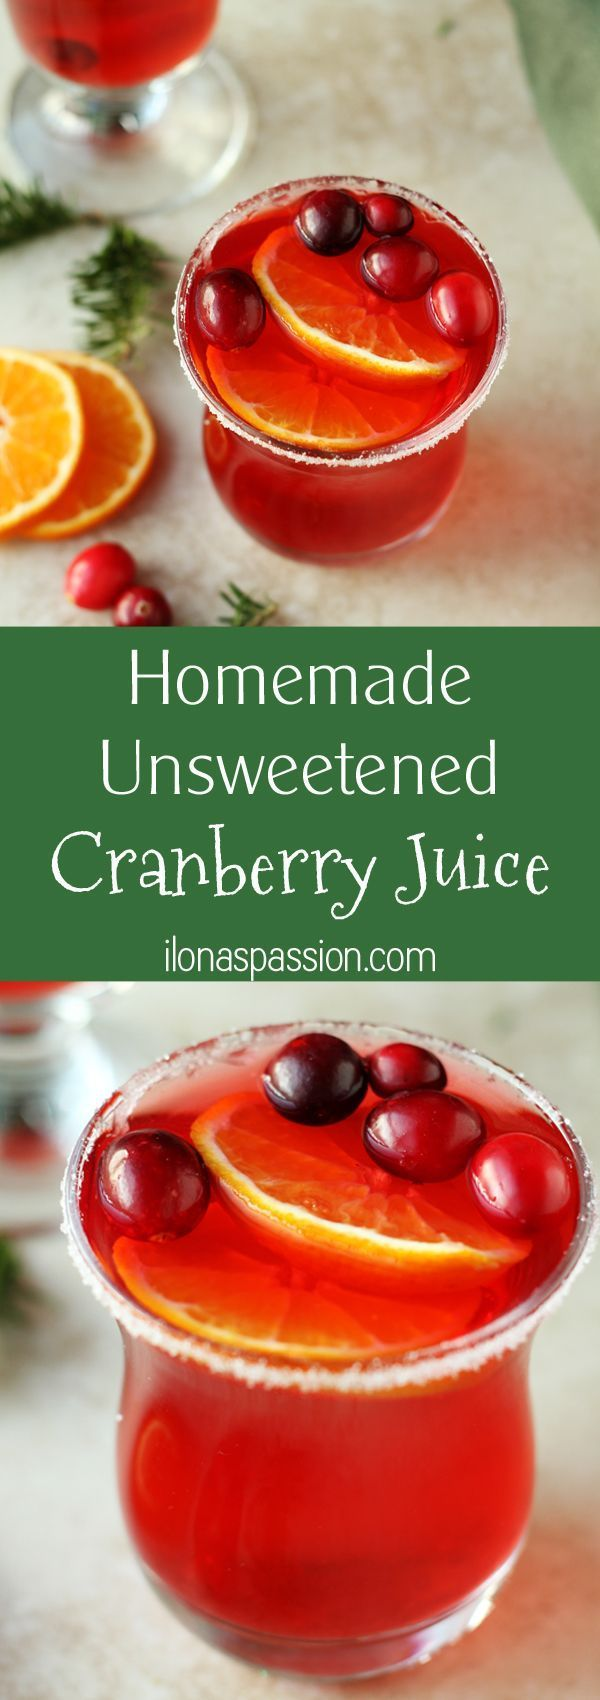 Homemade Unsweetened Cranberry Juice - 100% pure homemade unsweetened cranberry juice recipe that you can make easily at home. Only 1 ingredient to make refreshing and no sugar cranberry juice by http://ilonaspassion.com I /ilonaspassion/